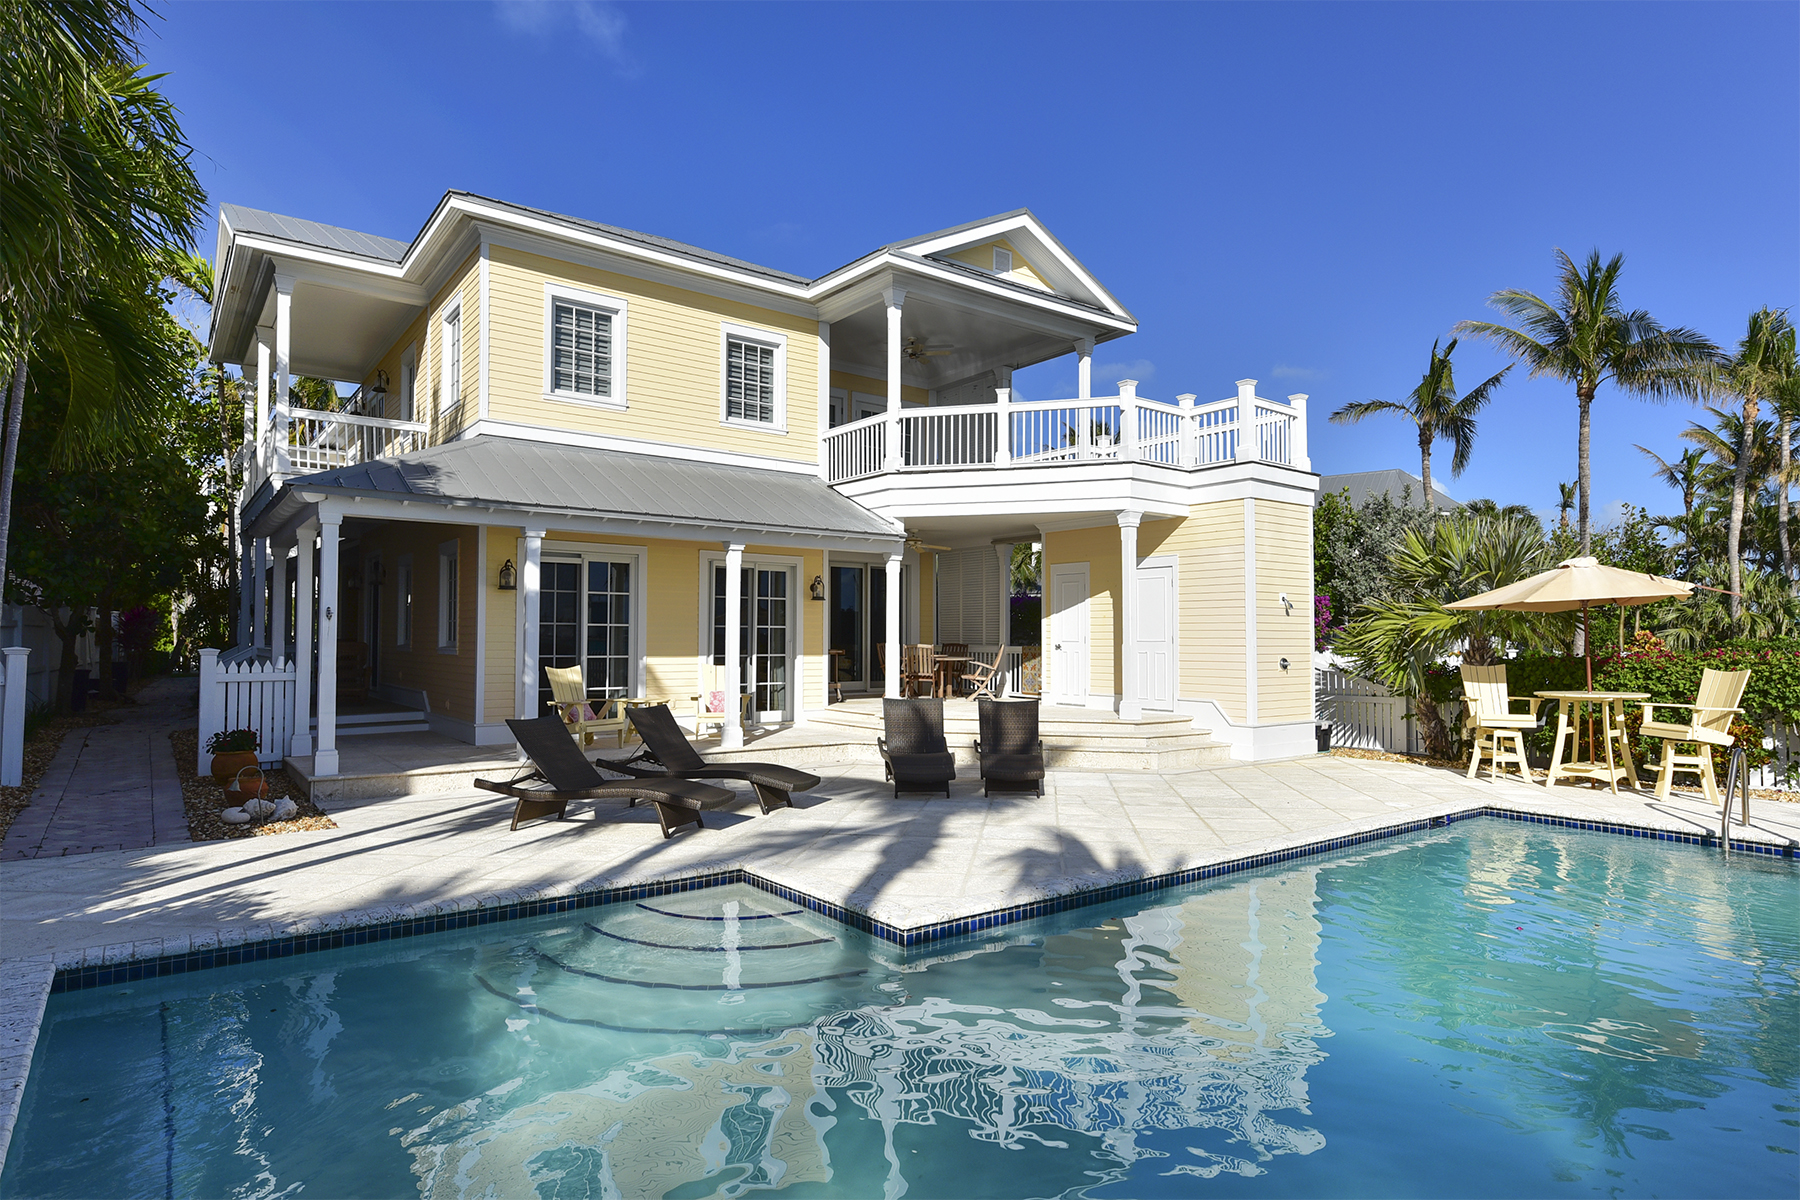 Maison unifamiliale pour l Vente à Oceanfront Home on Sunset Key 23 Sunset Key Drive Key West, Florida 33040 États-Unis